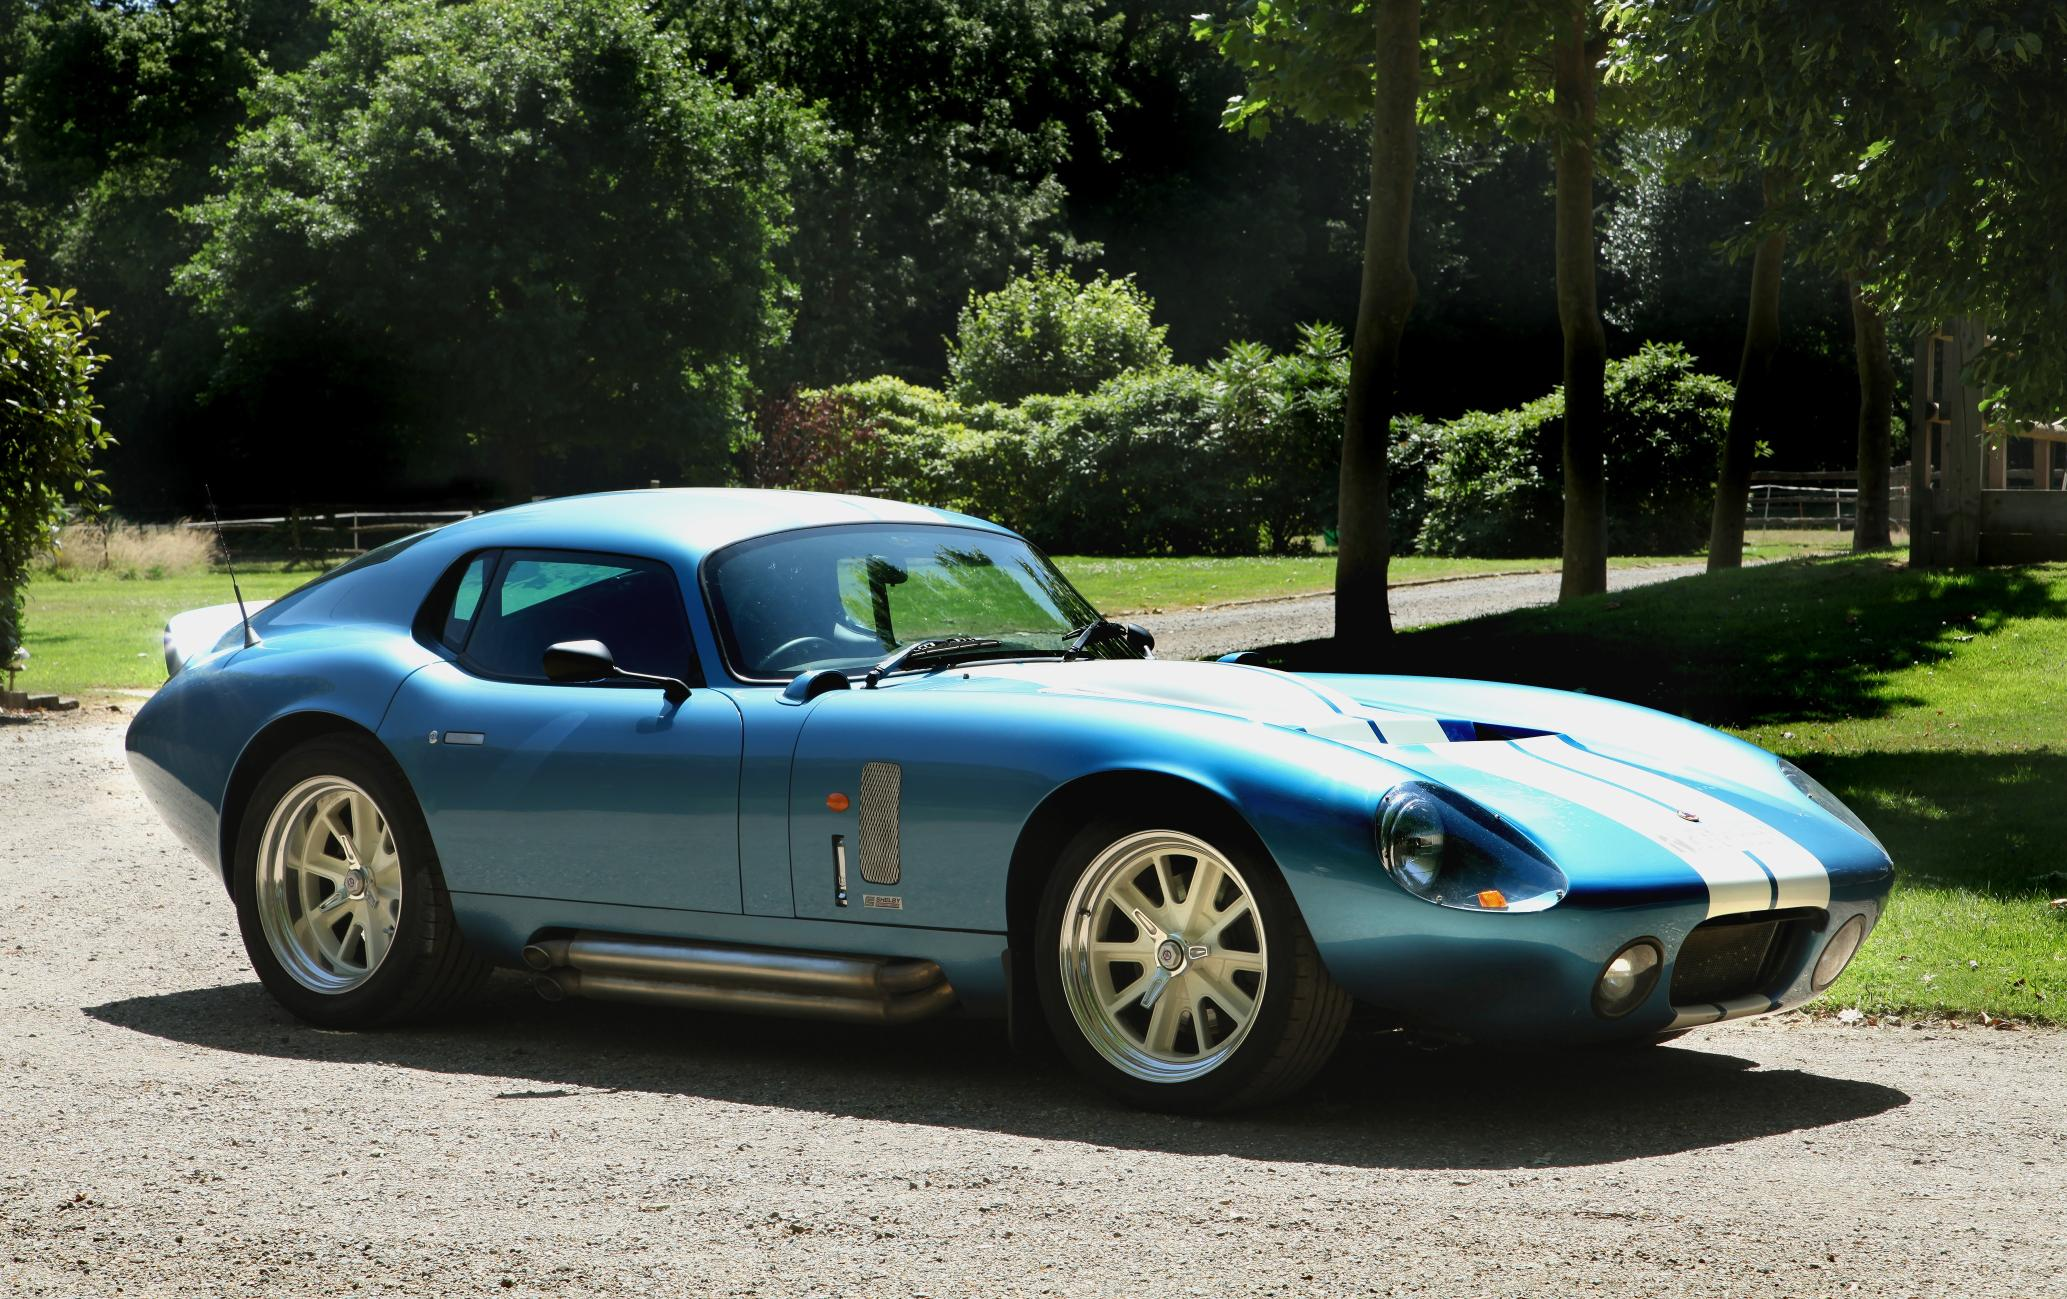 Shelby Daytona Cobra CSX9000 Series